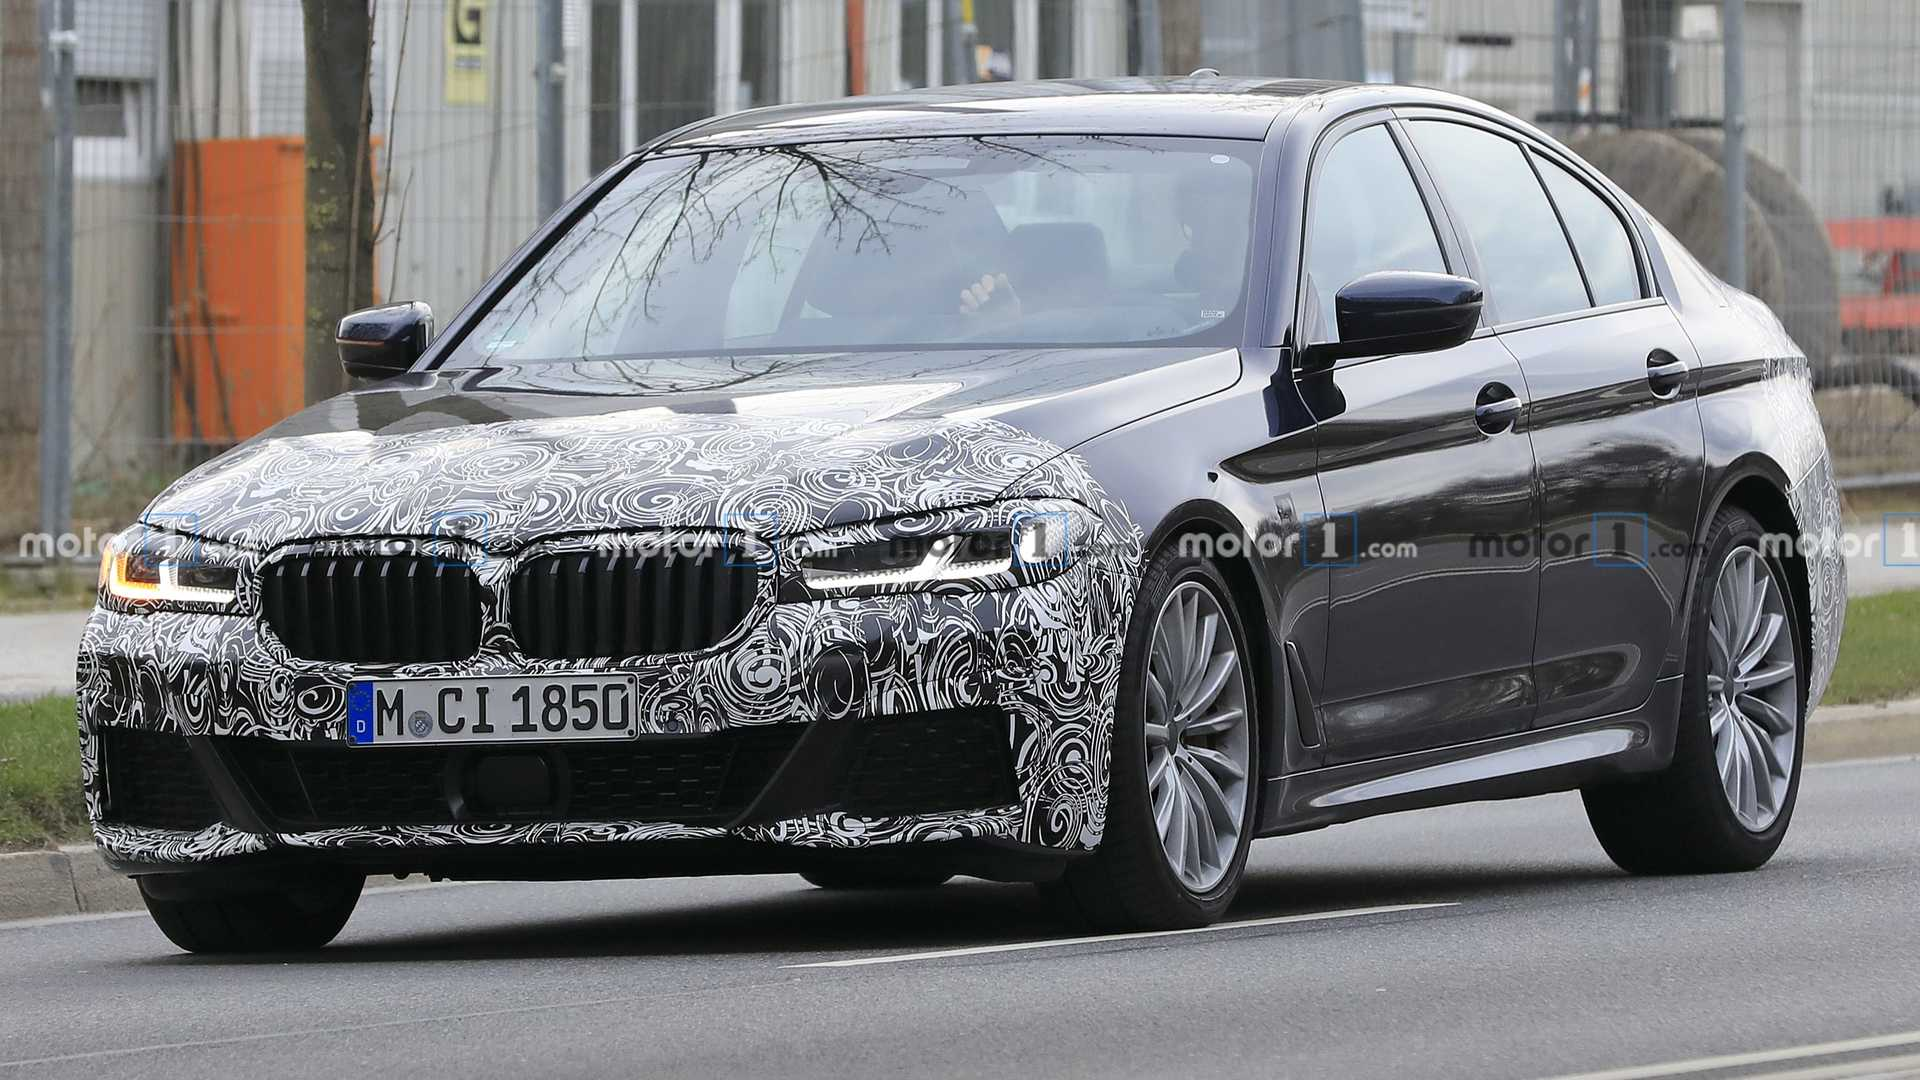 2021 Bmw 5 Series Facelift Spied With New Headlights And Taillights